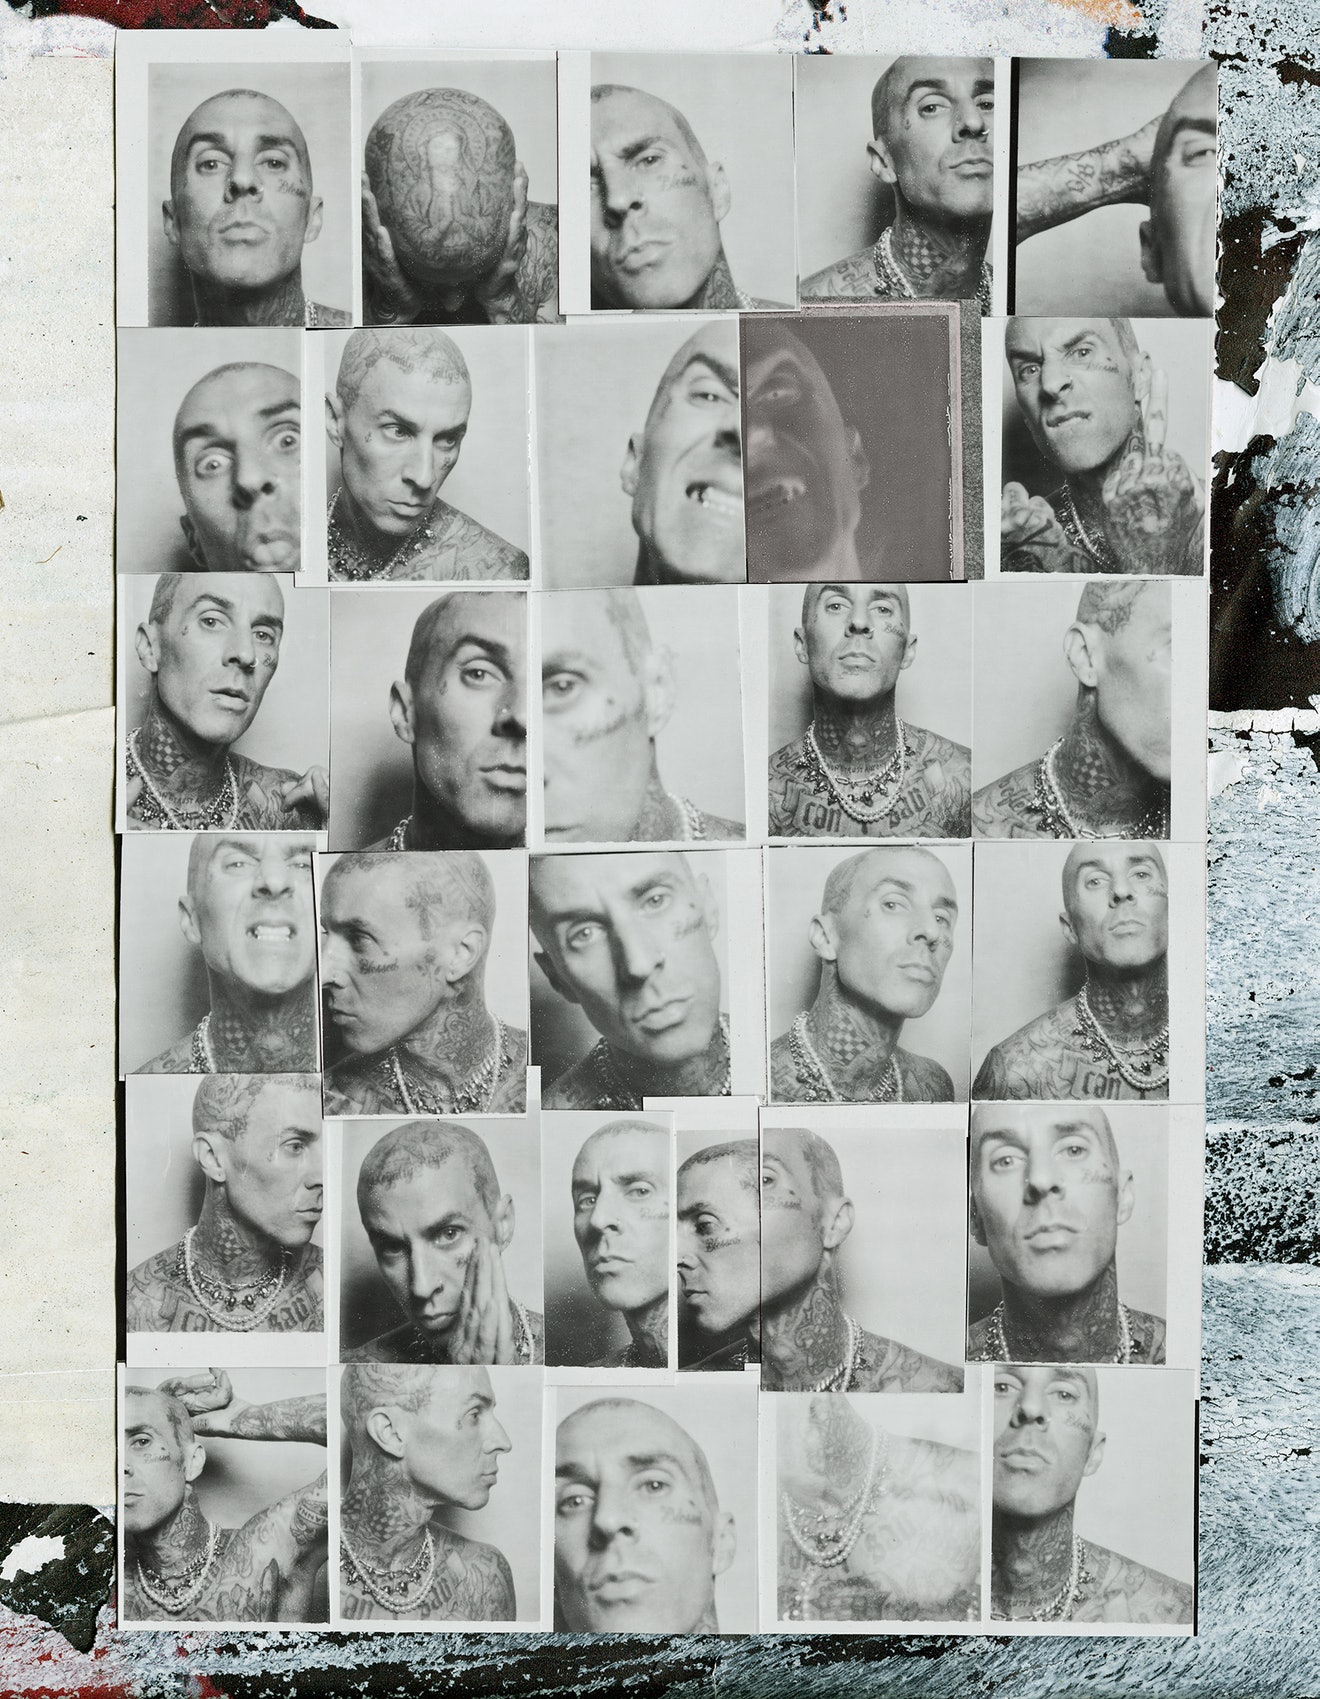 A collage of black and white Polaroid-style photos of NYLON cover star Travis Barker.